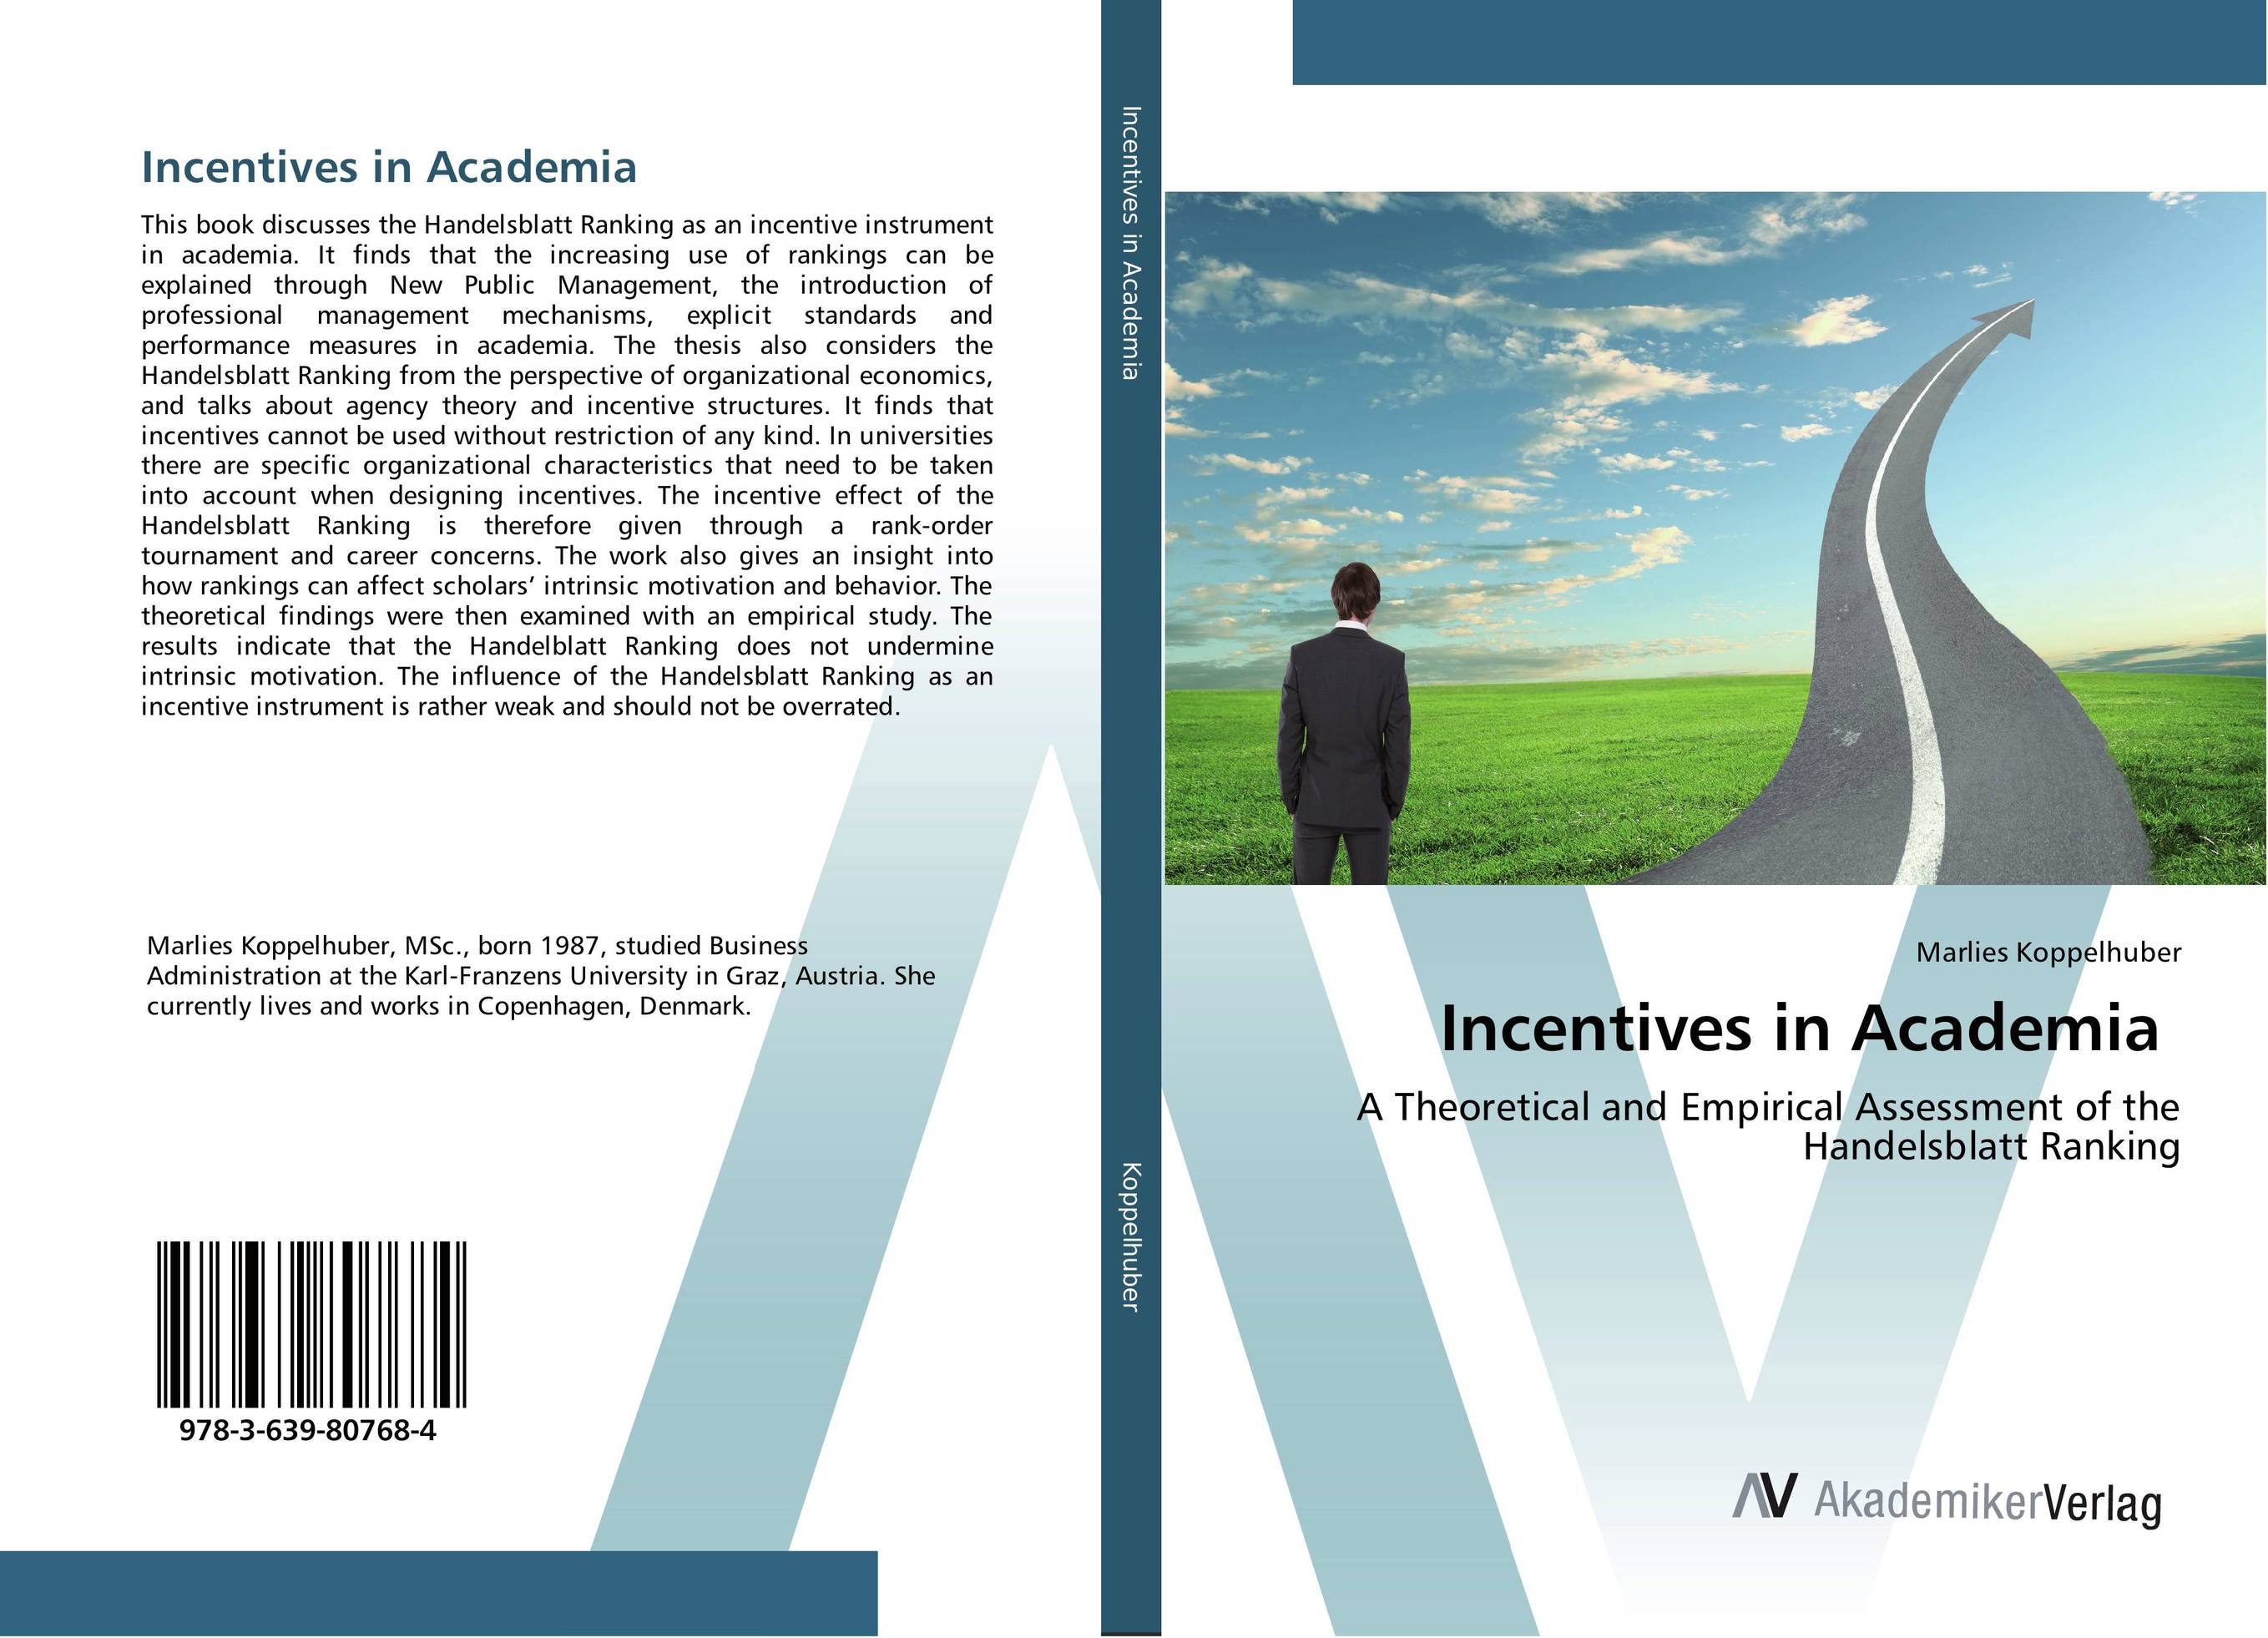 Incentives in Academia incentive travel